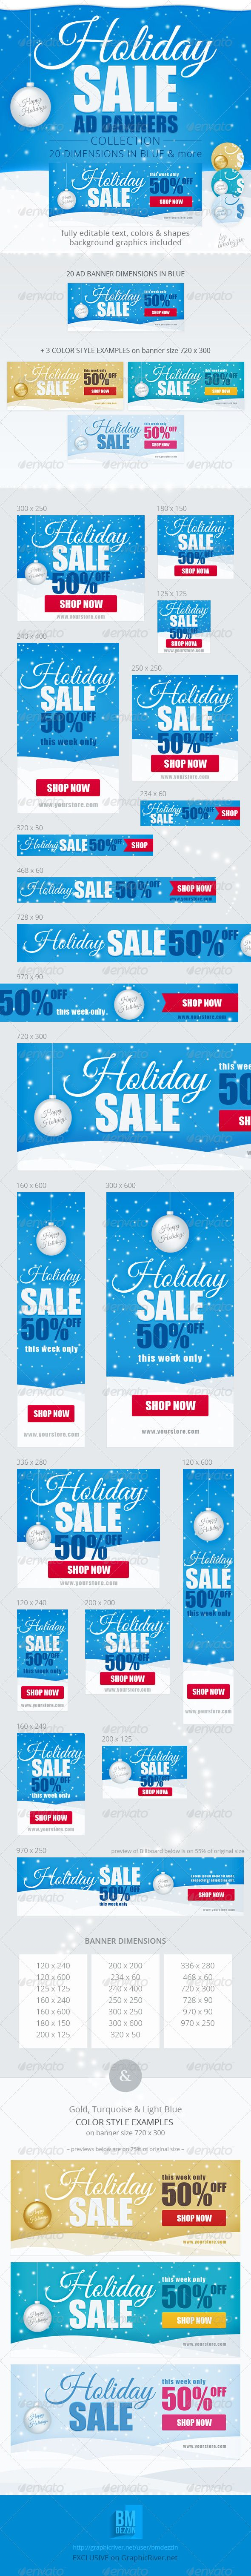 Holiday Sale Web Ad Banners Template PSD | Buy and Download: http://graphicriver.net/item/holiday-sale-web-ad-banners/6211368?WT.ac=category_thumb&WT.z_author=bmdezzin&ref=ksioks